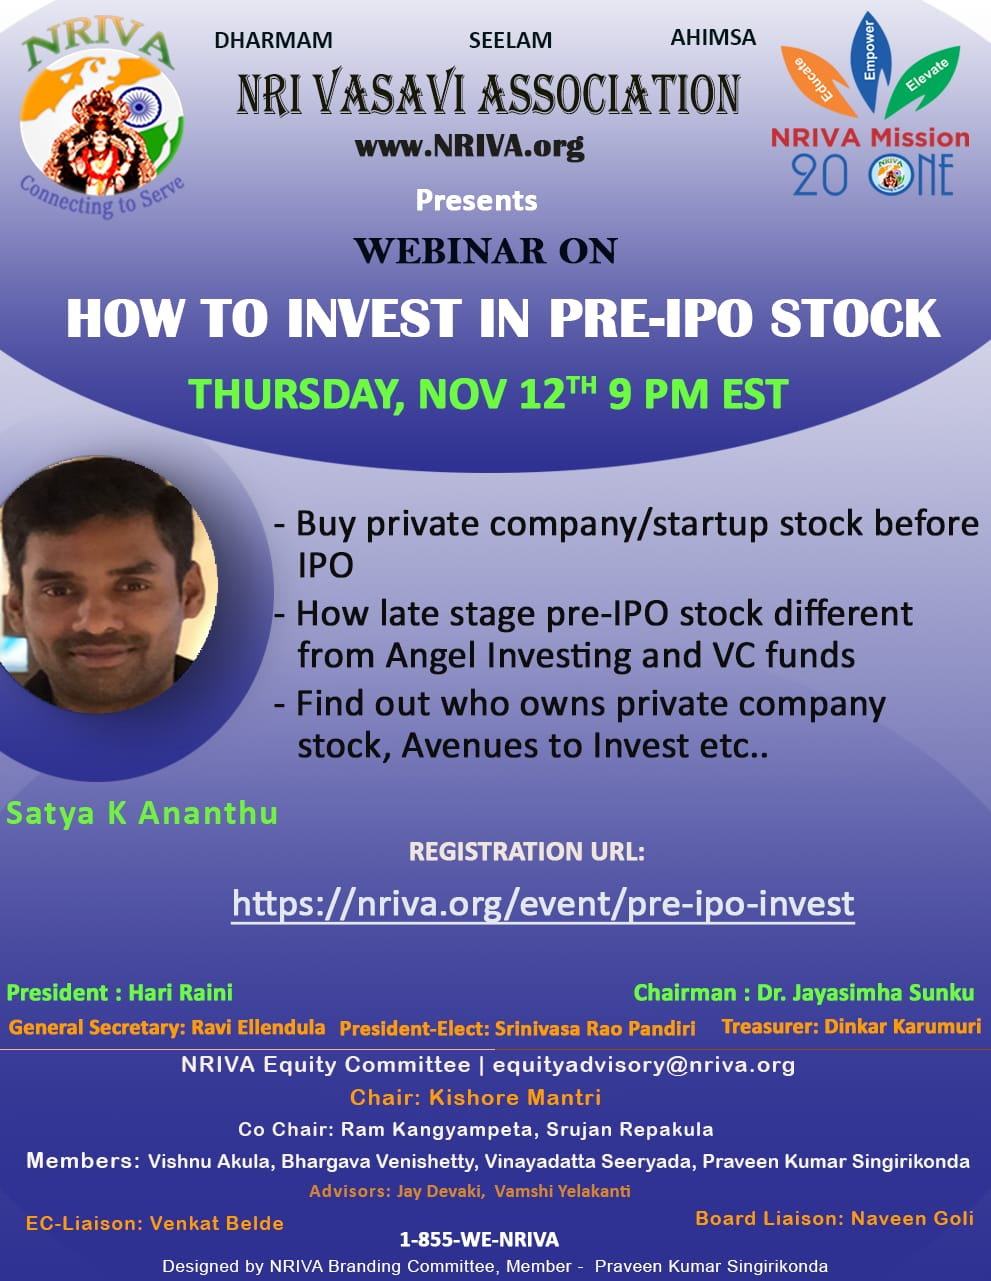 How to Invest in Pre-IPO Stock